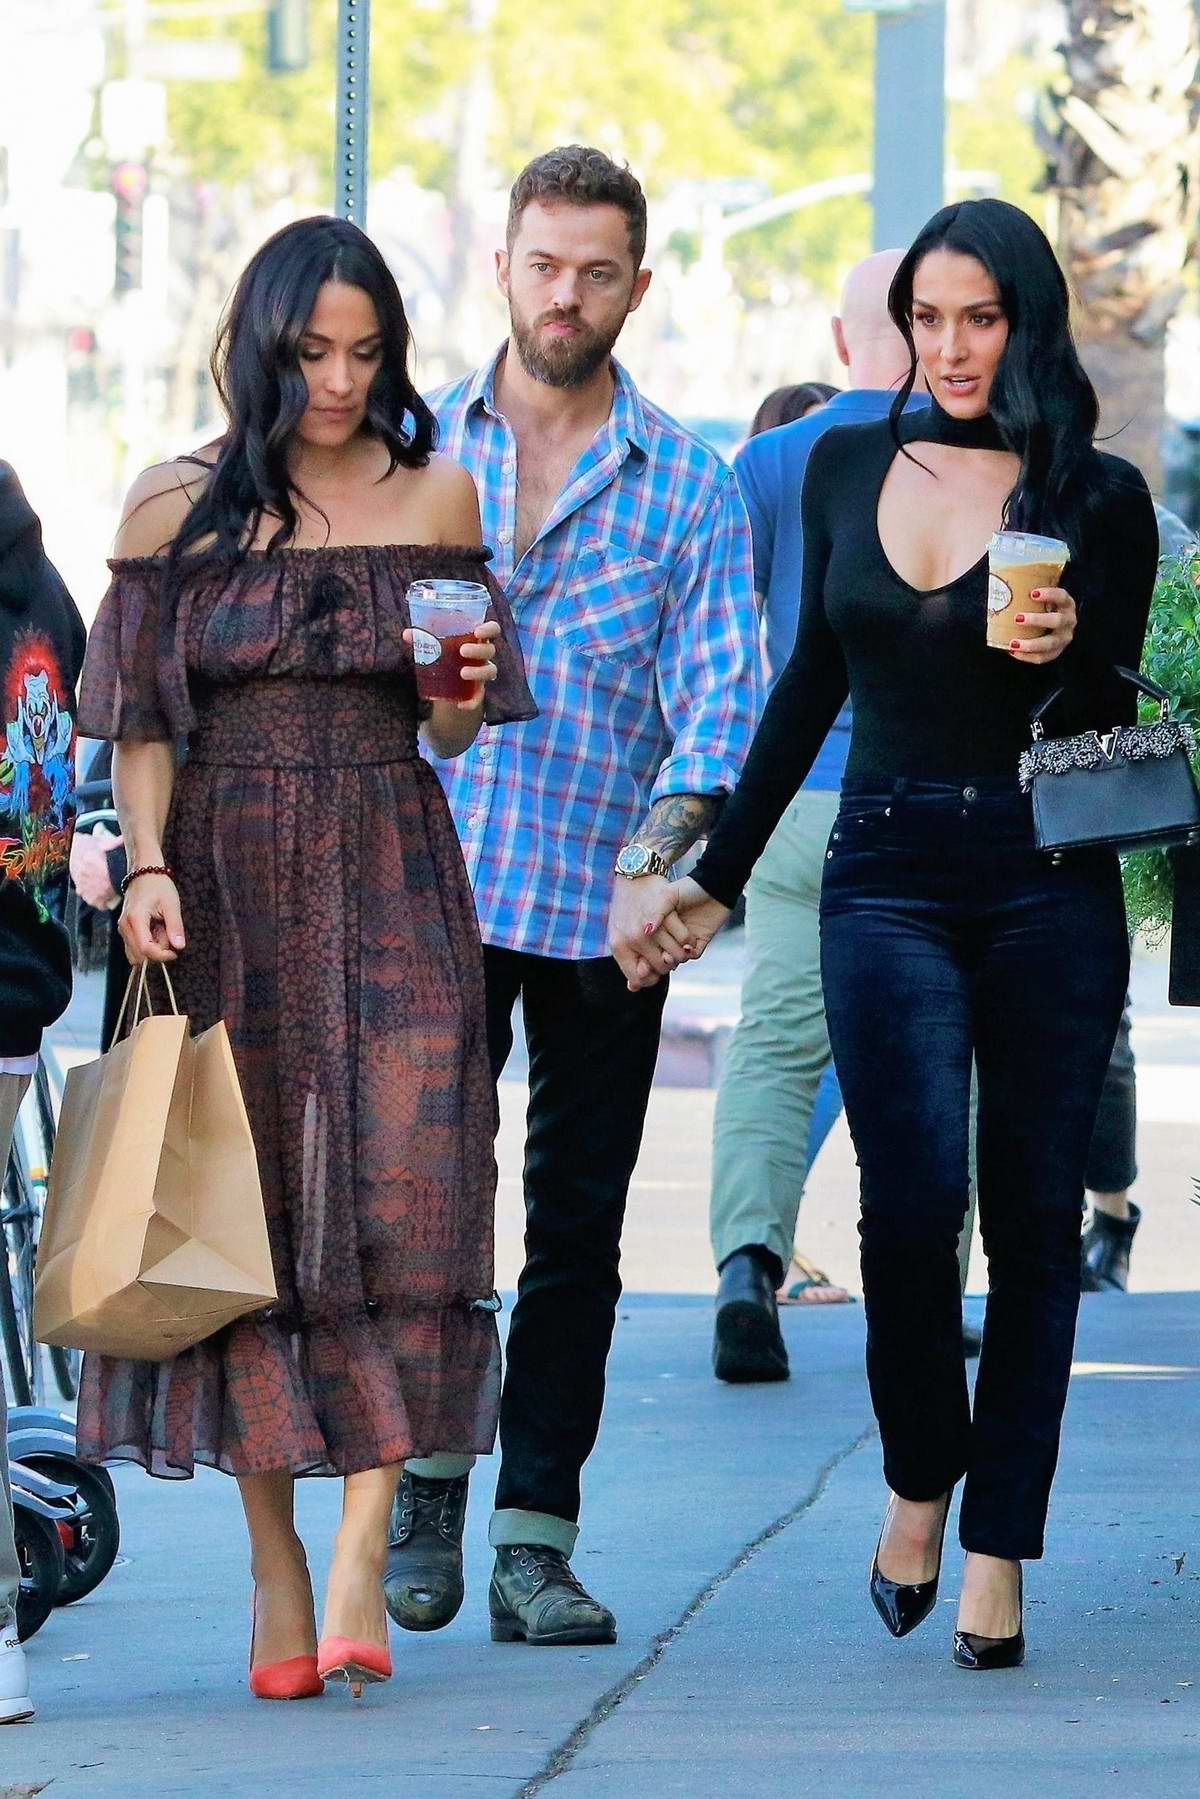 Nikki Bella, Brie Bella, and Artem Chigvintsev step out for lunch in Los Angeles